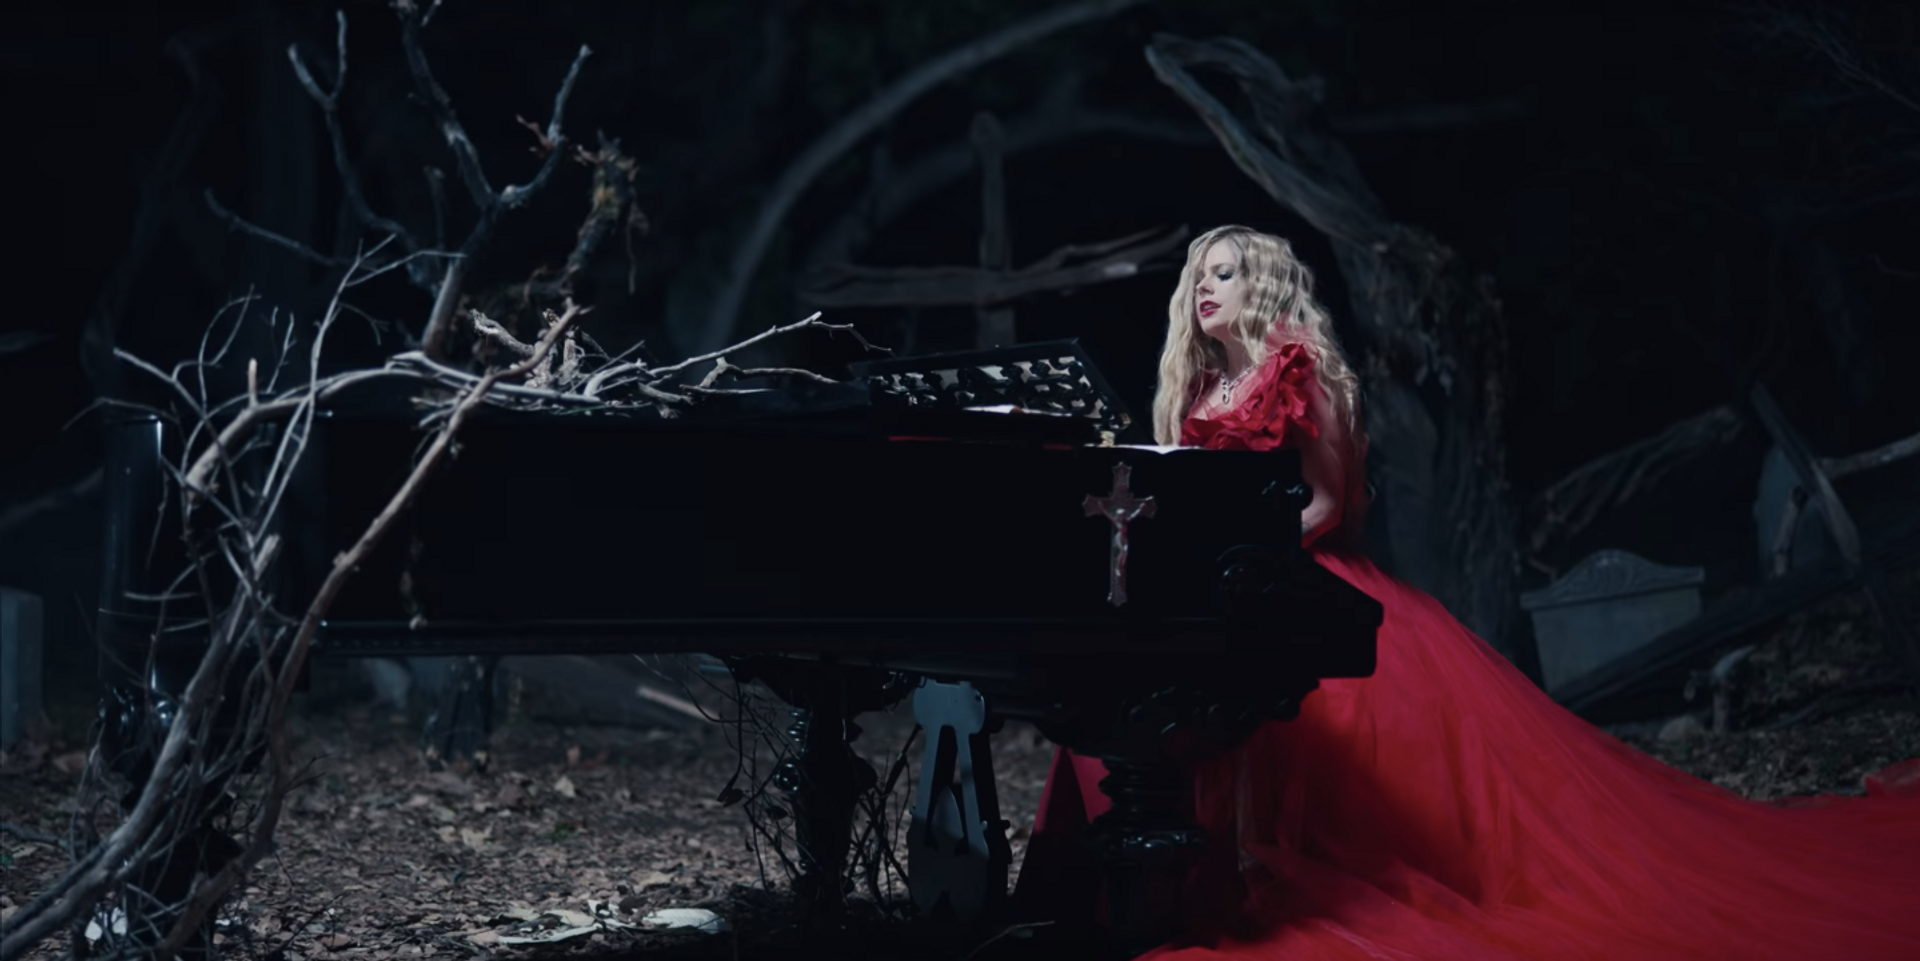 Avril Lavigne releases eerie music video for 'I Fell In Love With The Devil' – watch